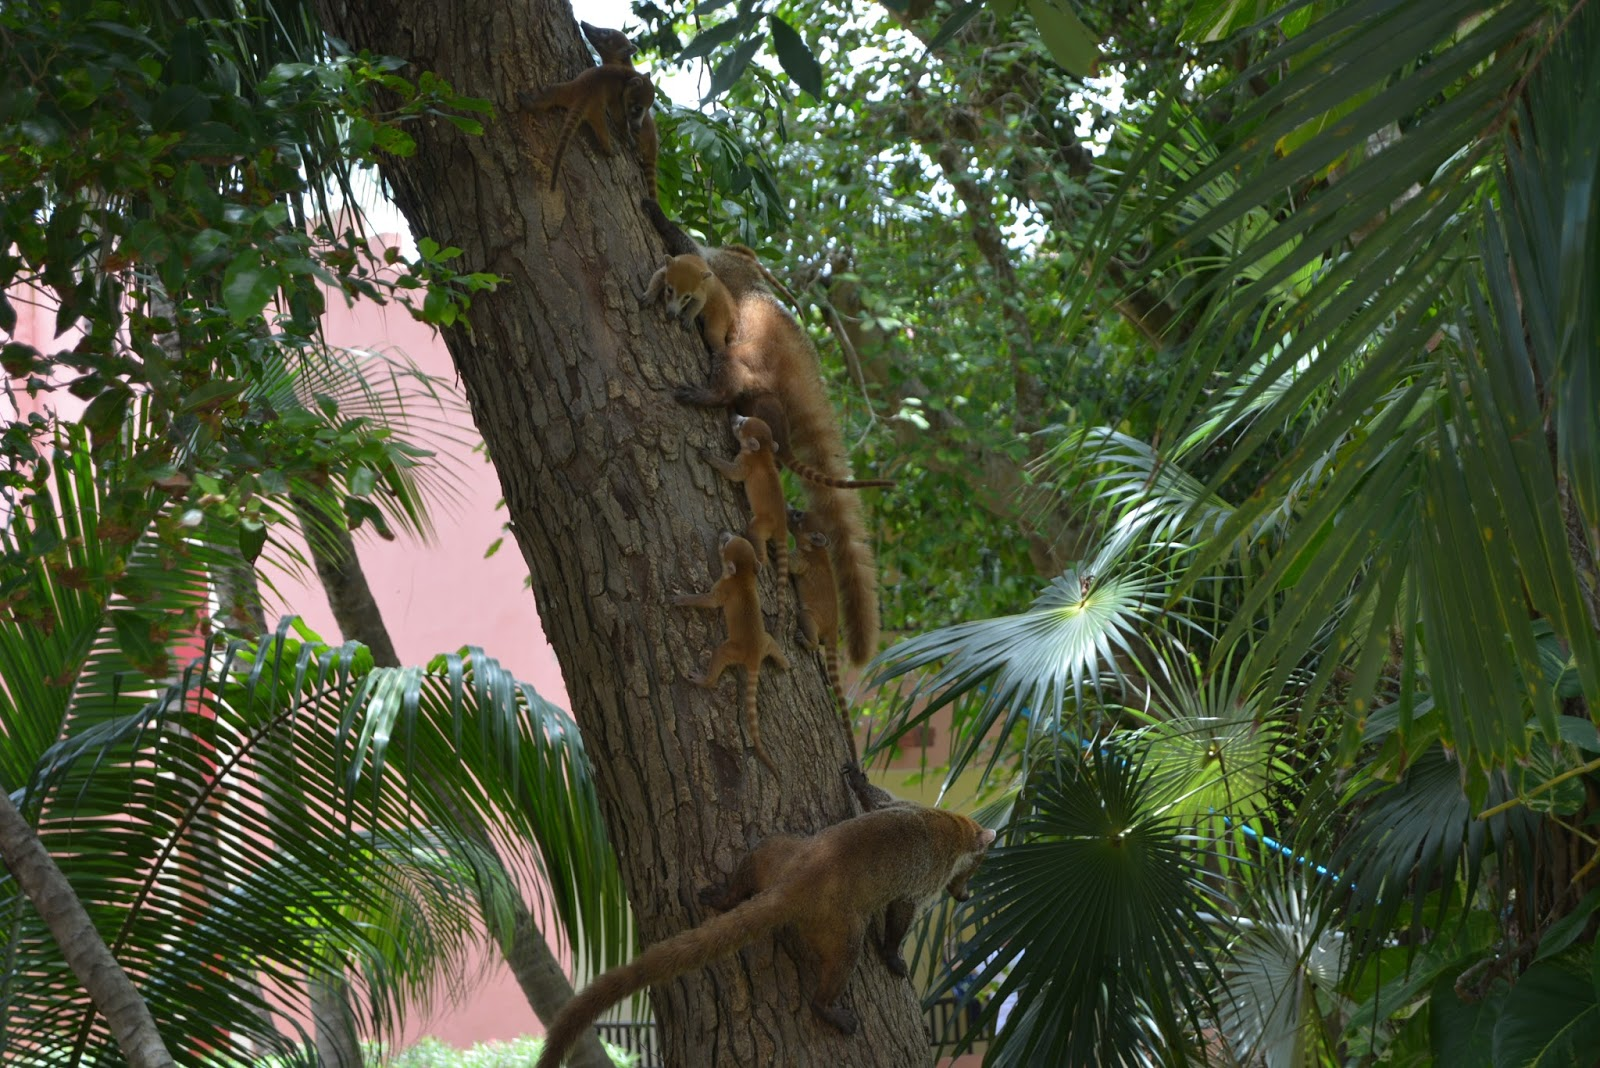 Coati, coatimundi, travel, wildlife, babies, travel, mexico, traveling, holiday, playa del carmen, playacar, riu tequila